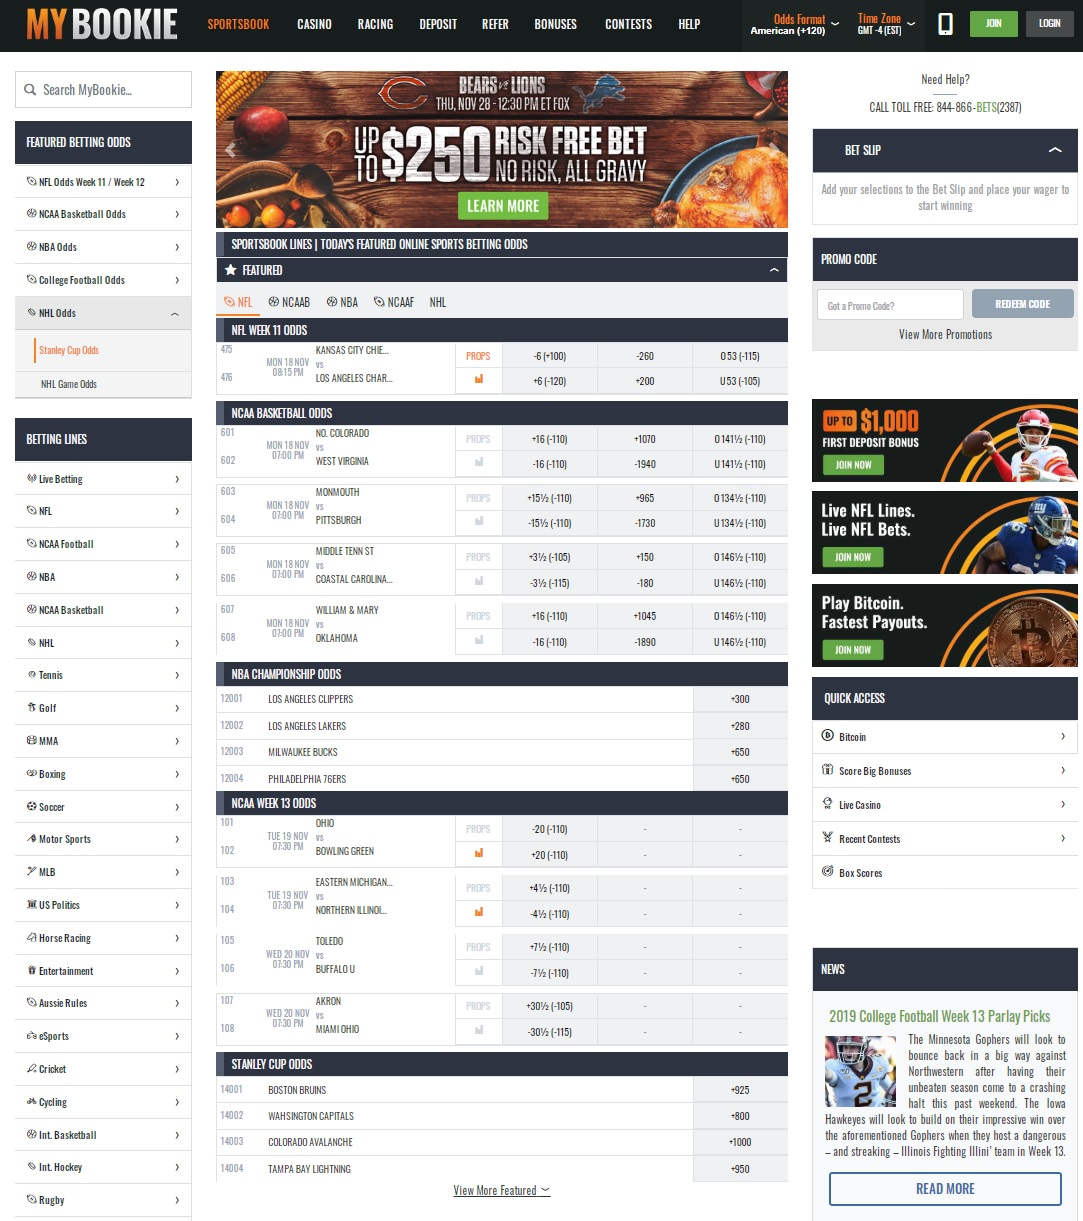 MyBookie ag Promo Codes for $1500 in Sports Bonuses Dec 2019